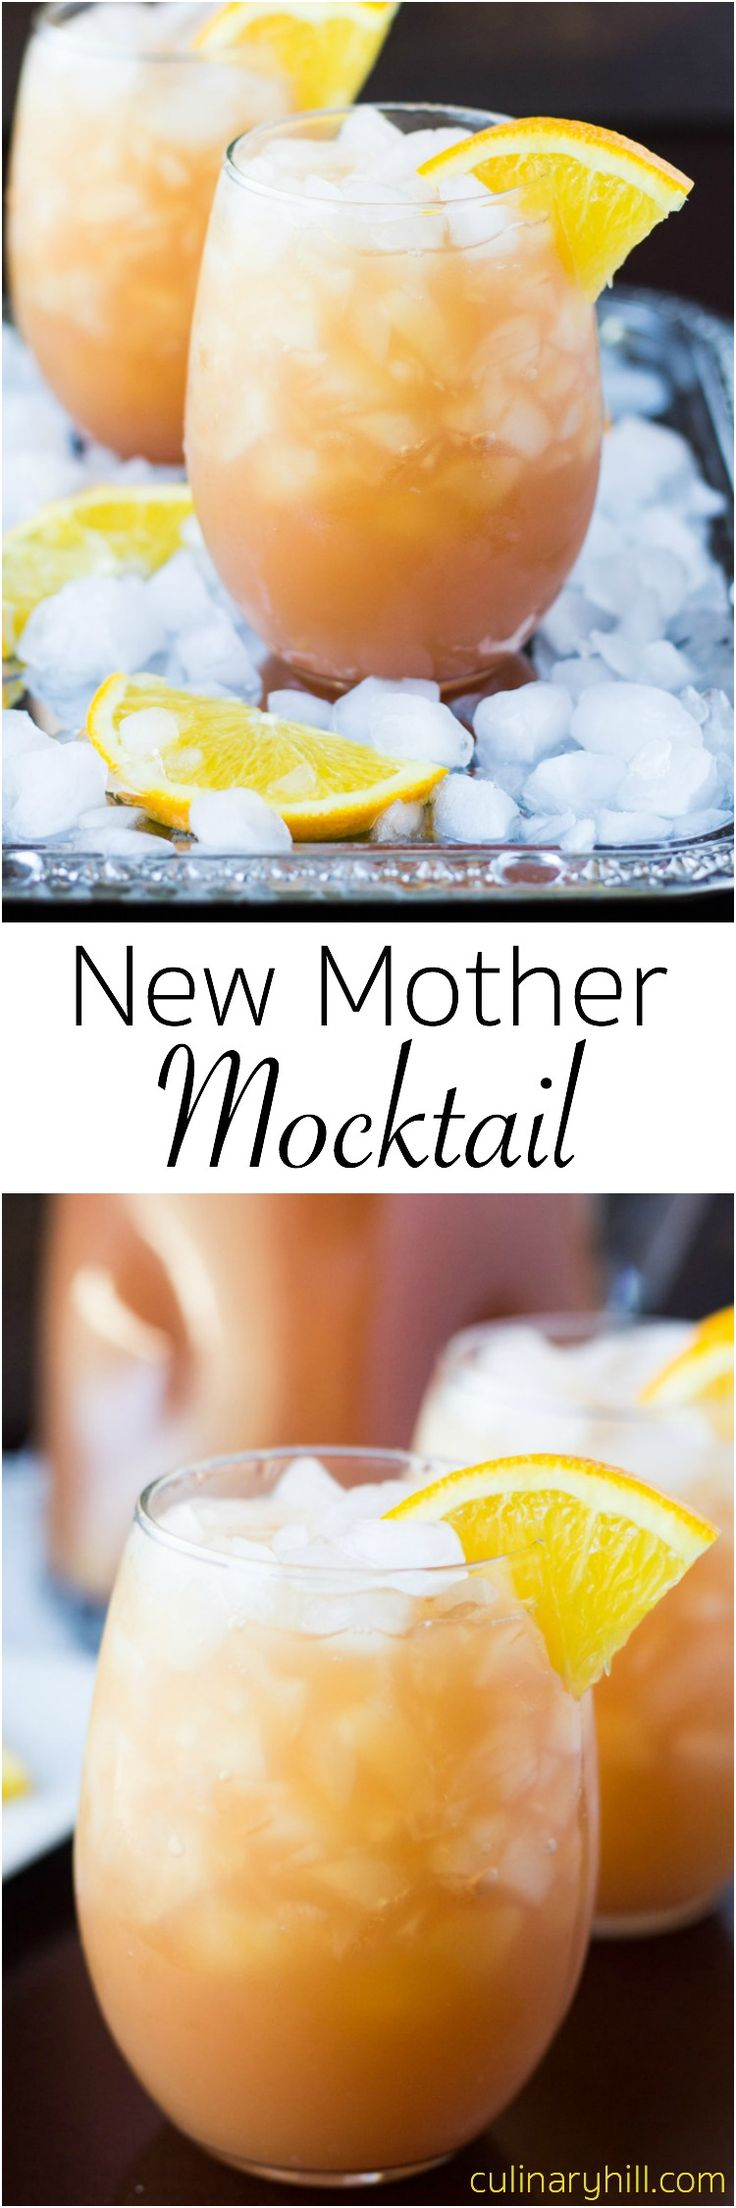 This New Mother Mocktail is a delicious blend of juices perfect for recovering moms, baby showers, or any occasion that calls for a fruity drink! Pinned over 8,000 times!